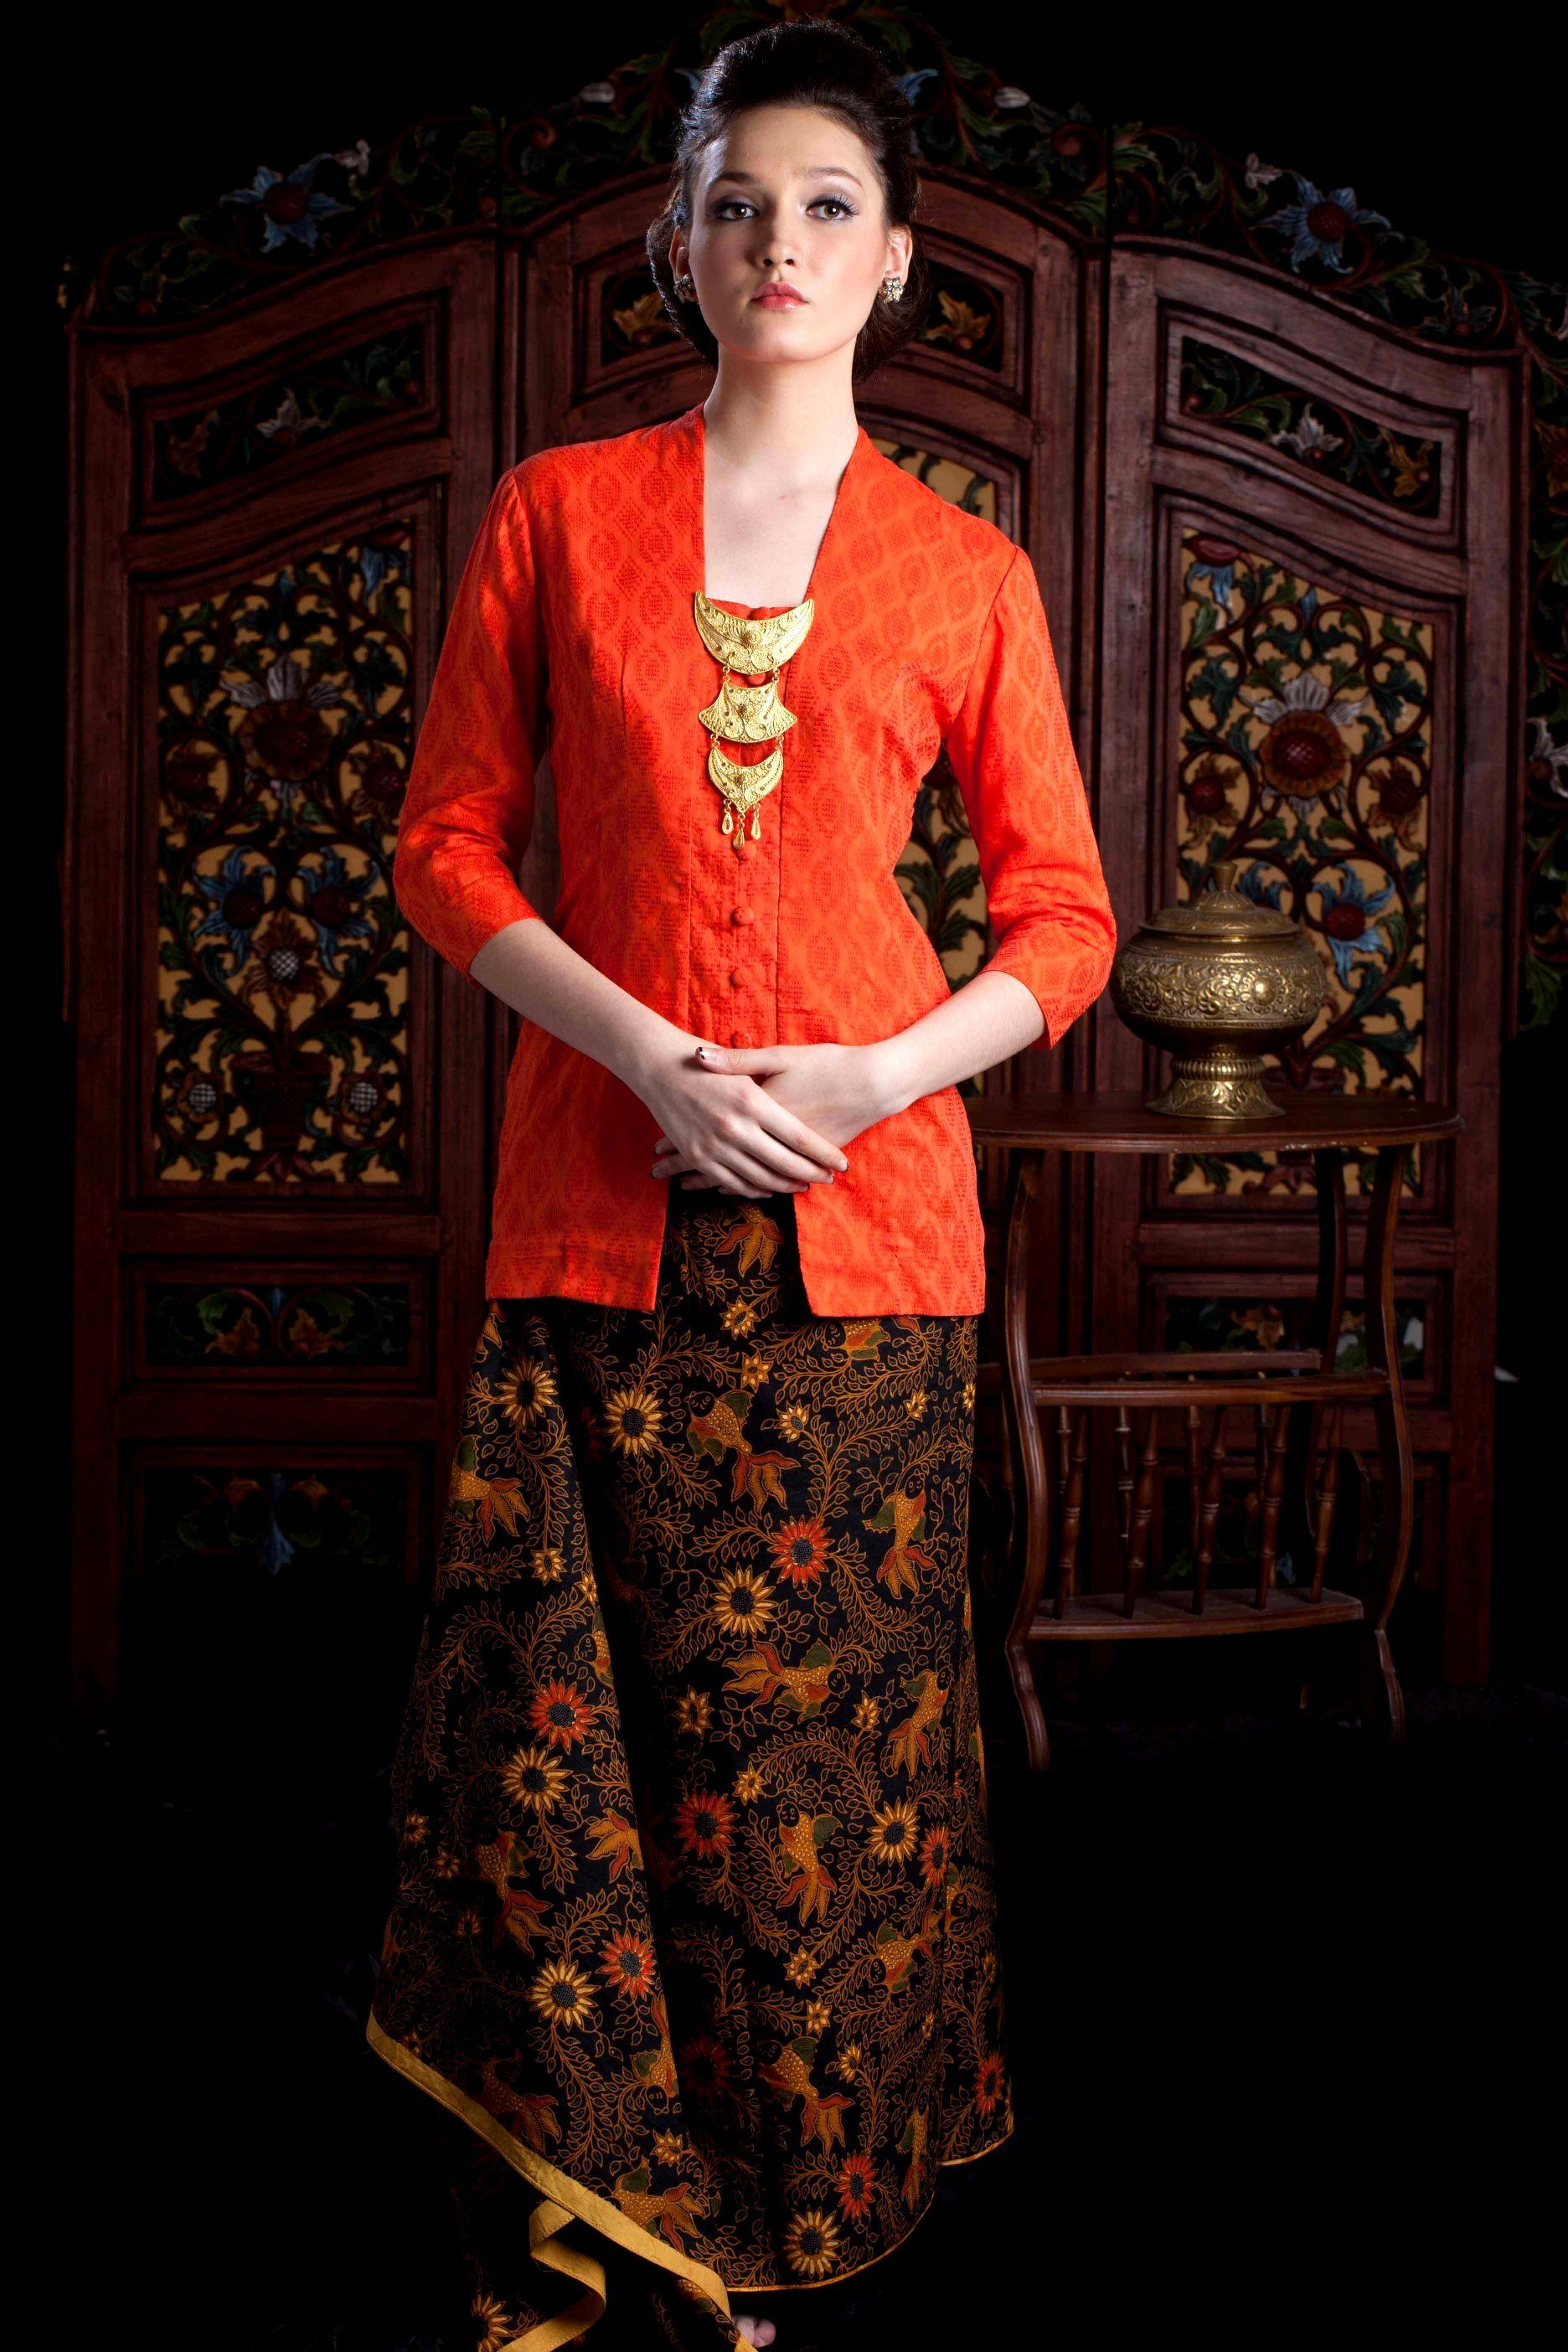 Baju Raya Kebaya Indonesia Party Dresses Ikat Fashion Brands Tween Party Dresses Party Wear Dresses Party Gowns Party Dress